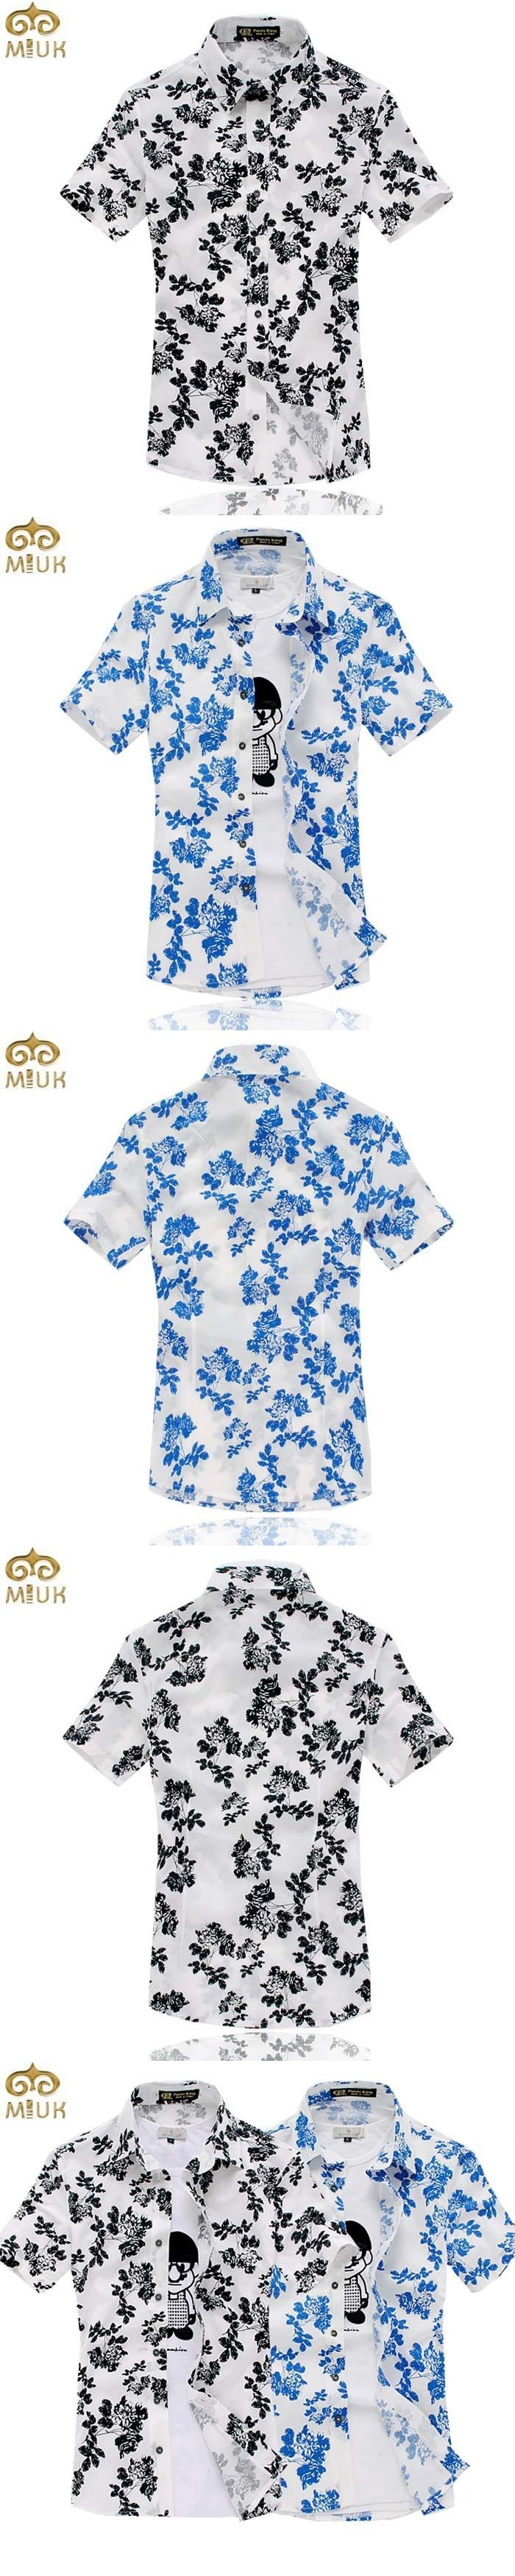 MIUK Large Size Floral Summer Style Camisas Hombre 5XL 4XL Cotton Brand Shirt Short Sleeve Casual Men Clothes 11.11 2017 New